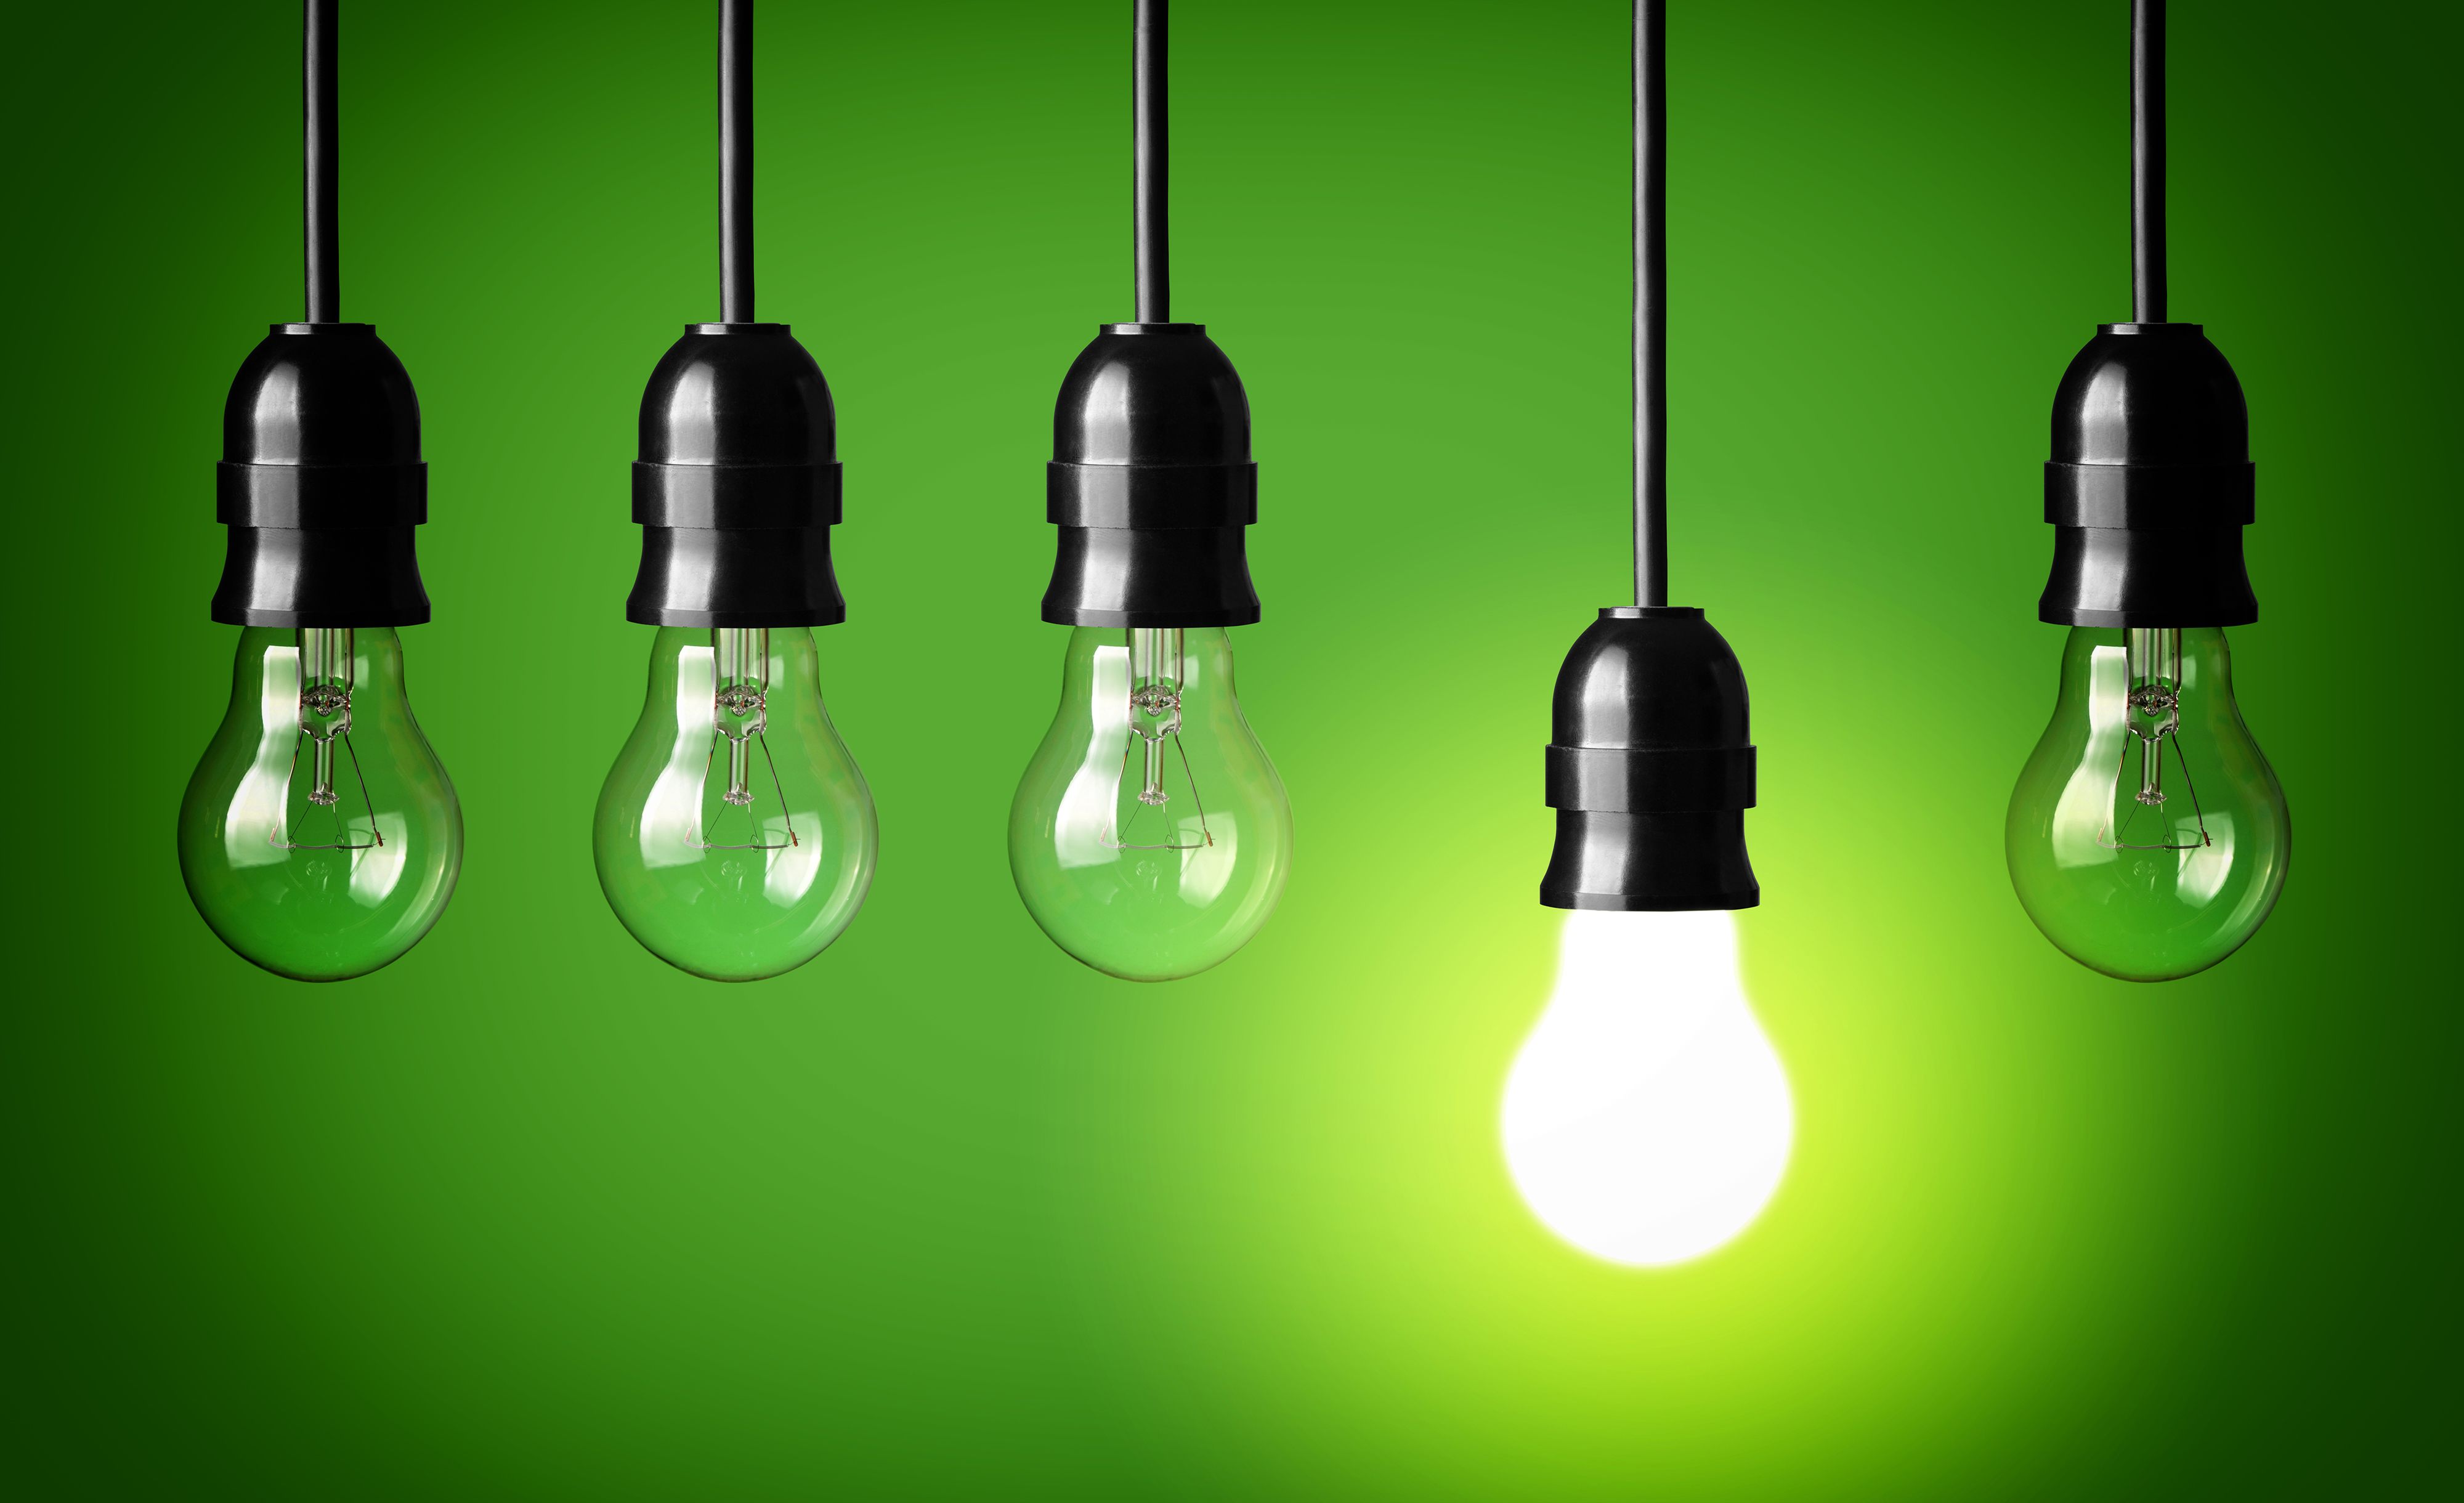 light_bulbs_green_background-4000